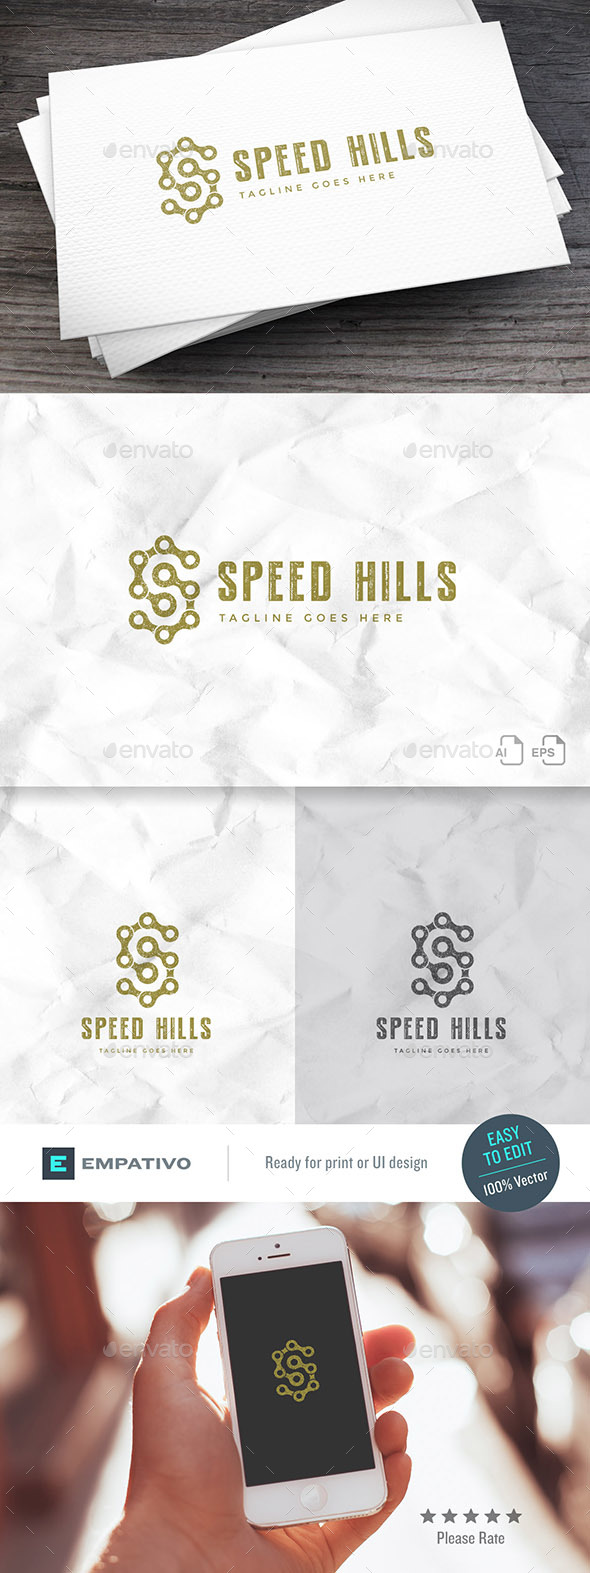 Speed Hills Logo Template